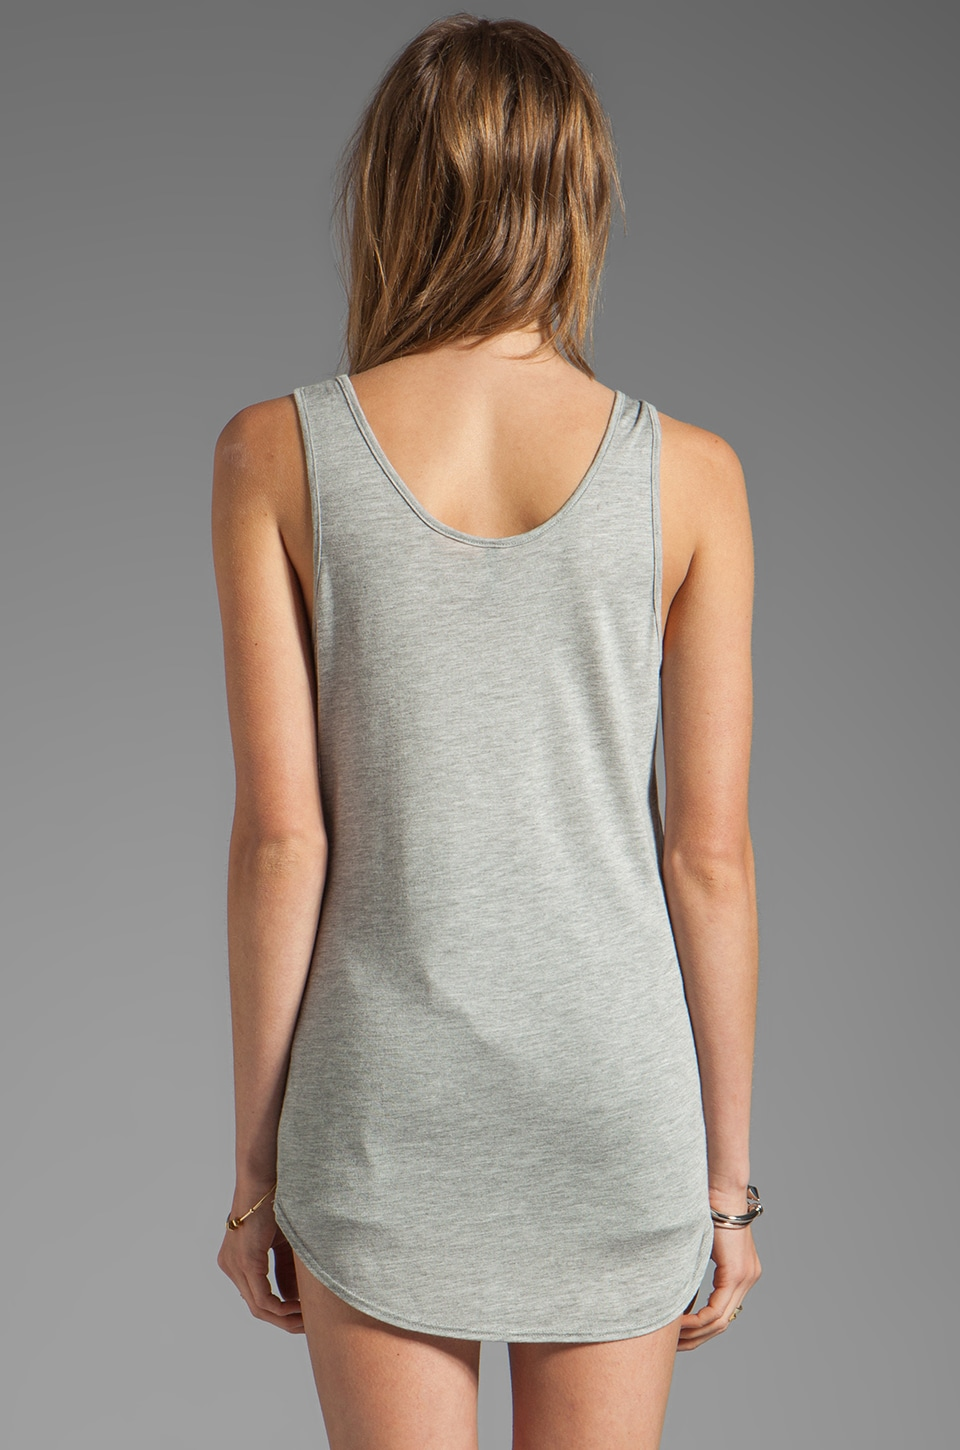 Riller & Fount Khia Loose V-Neck Tank in Heather Grey